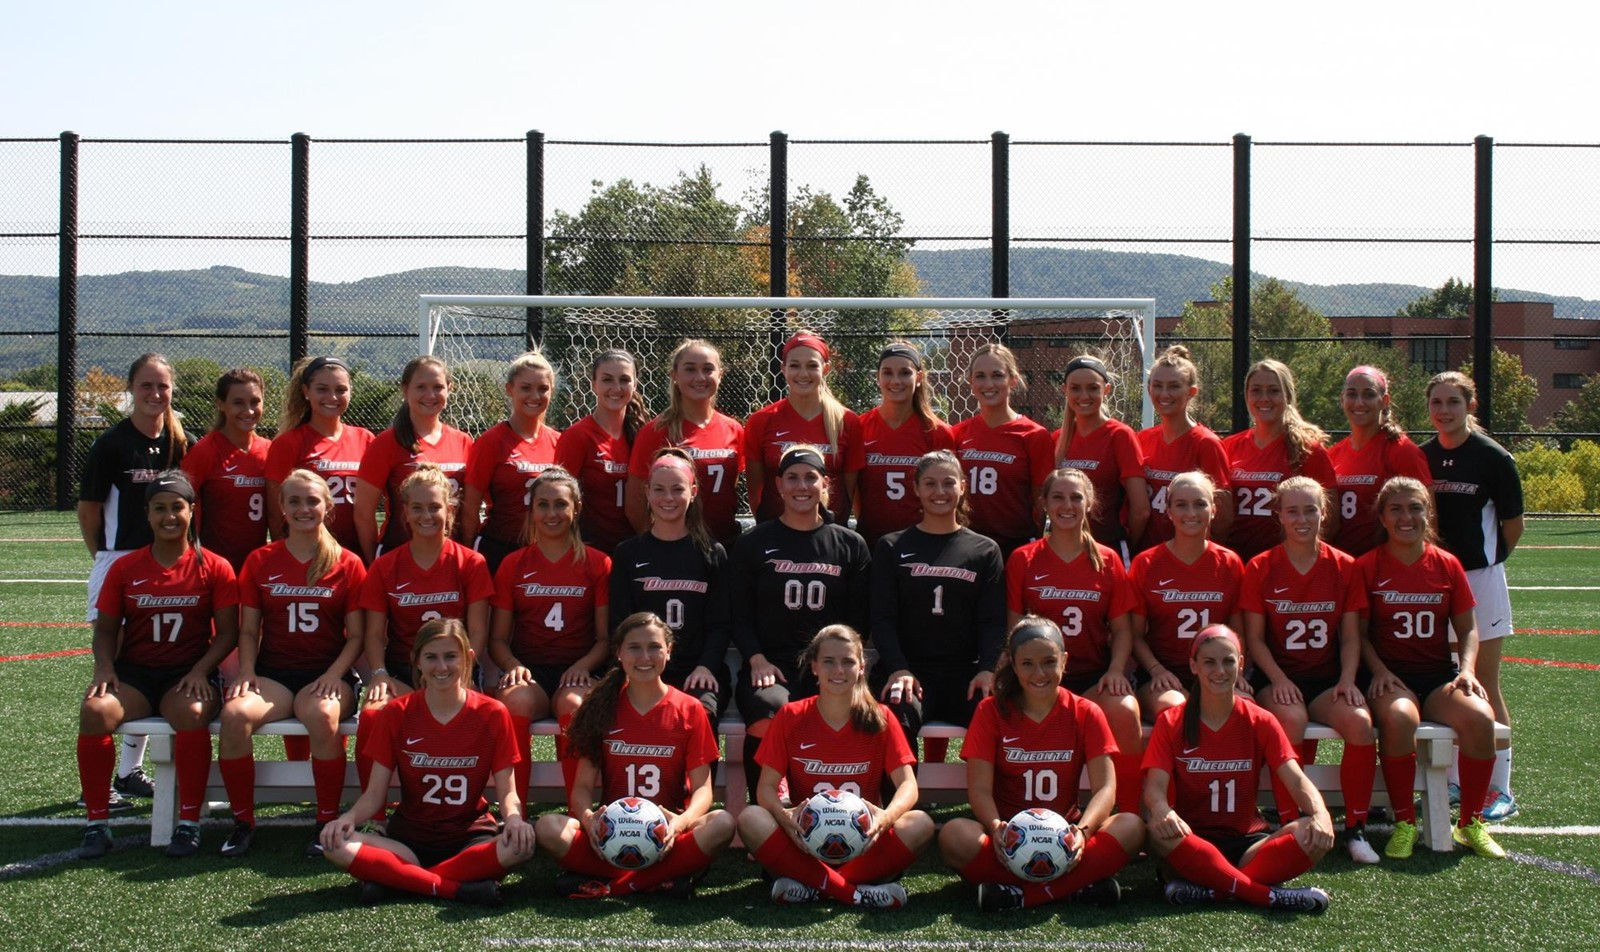 2017 Women's Soccer Roster - SUNY Oneonta Athletics